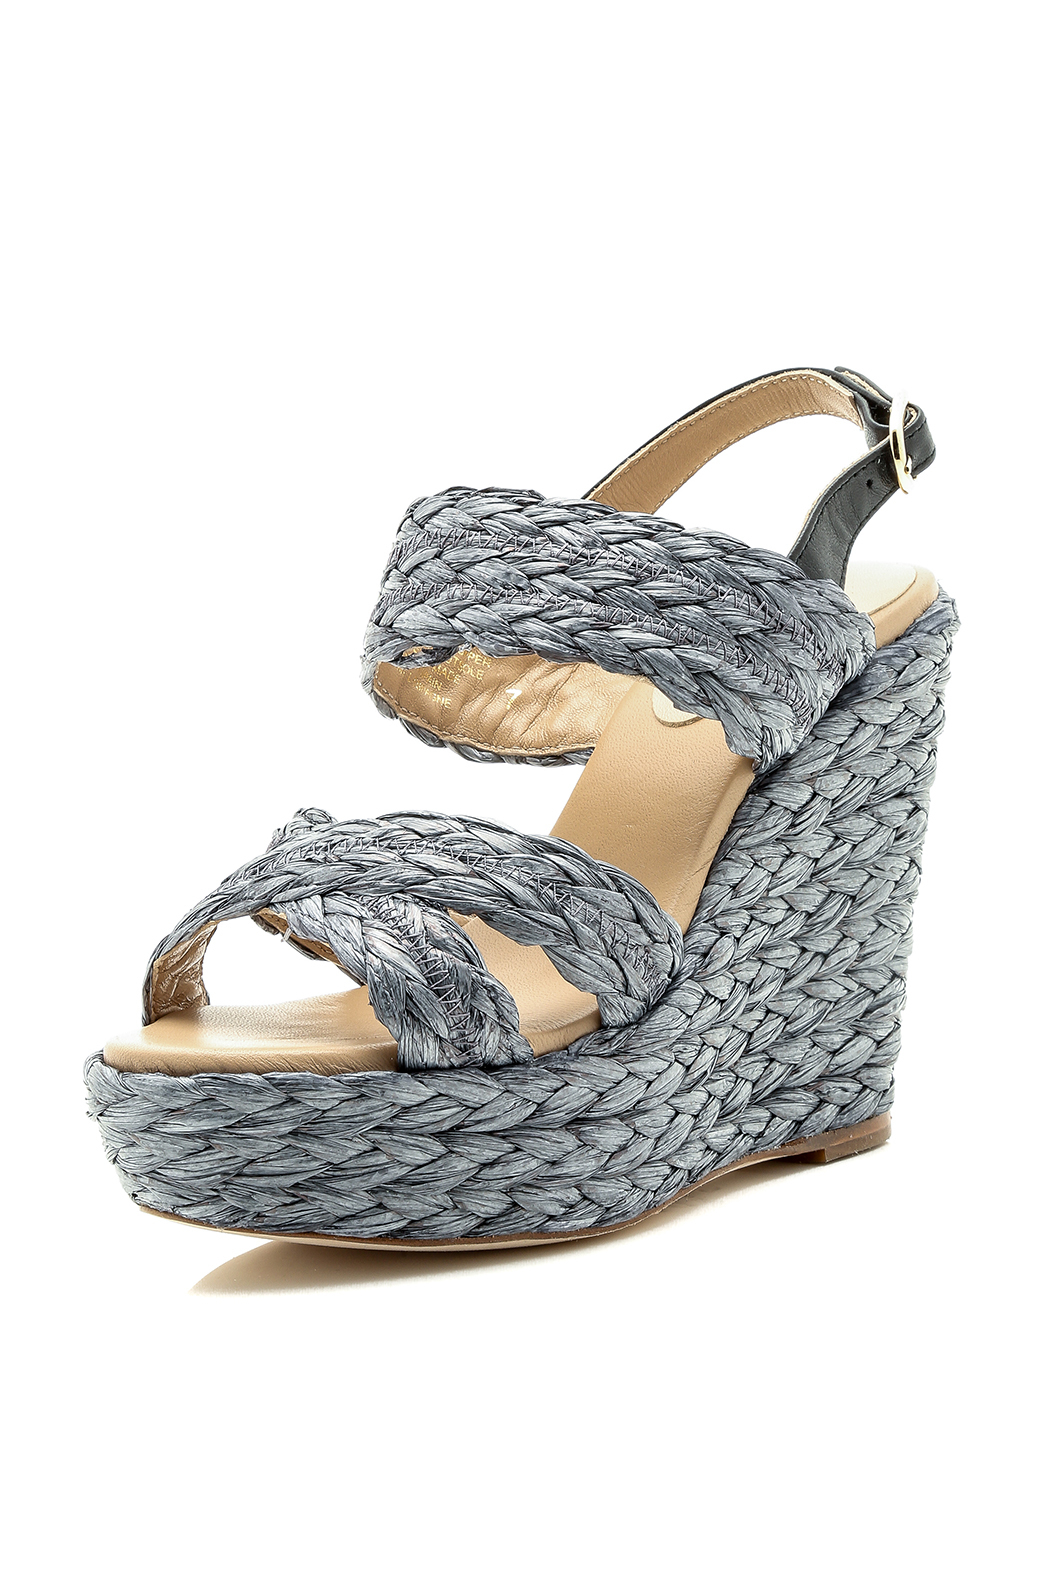 6797766770b Eight Fifteen Hula Hoop Braided Wedge from New York City by WiNK ...